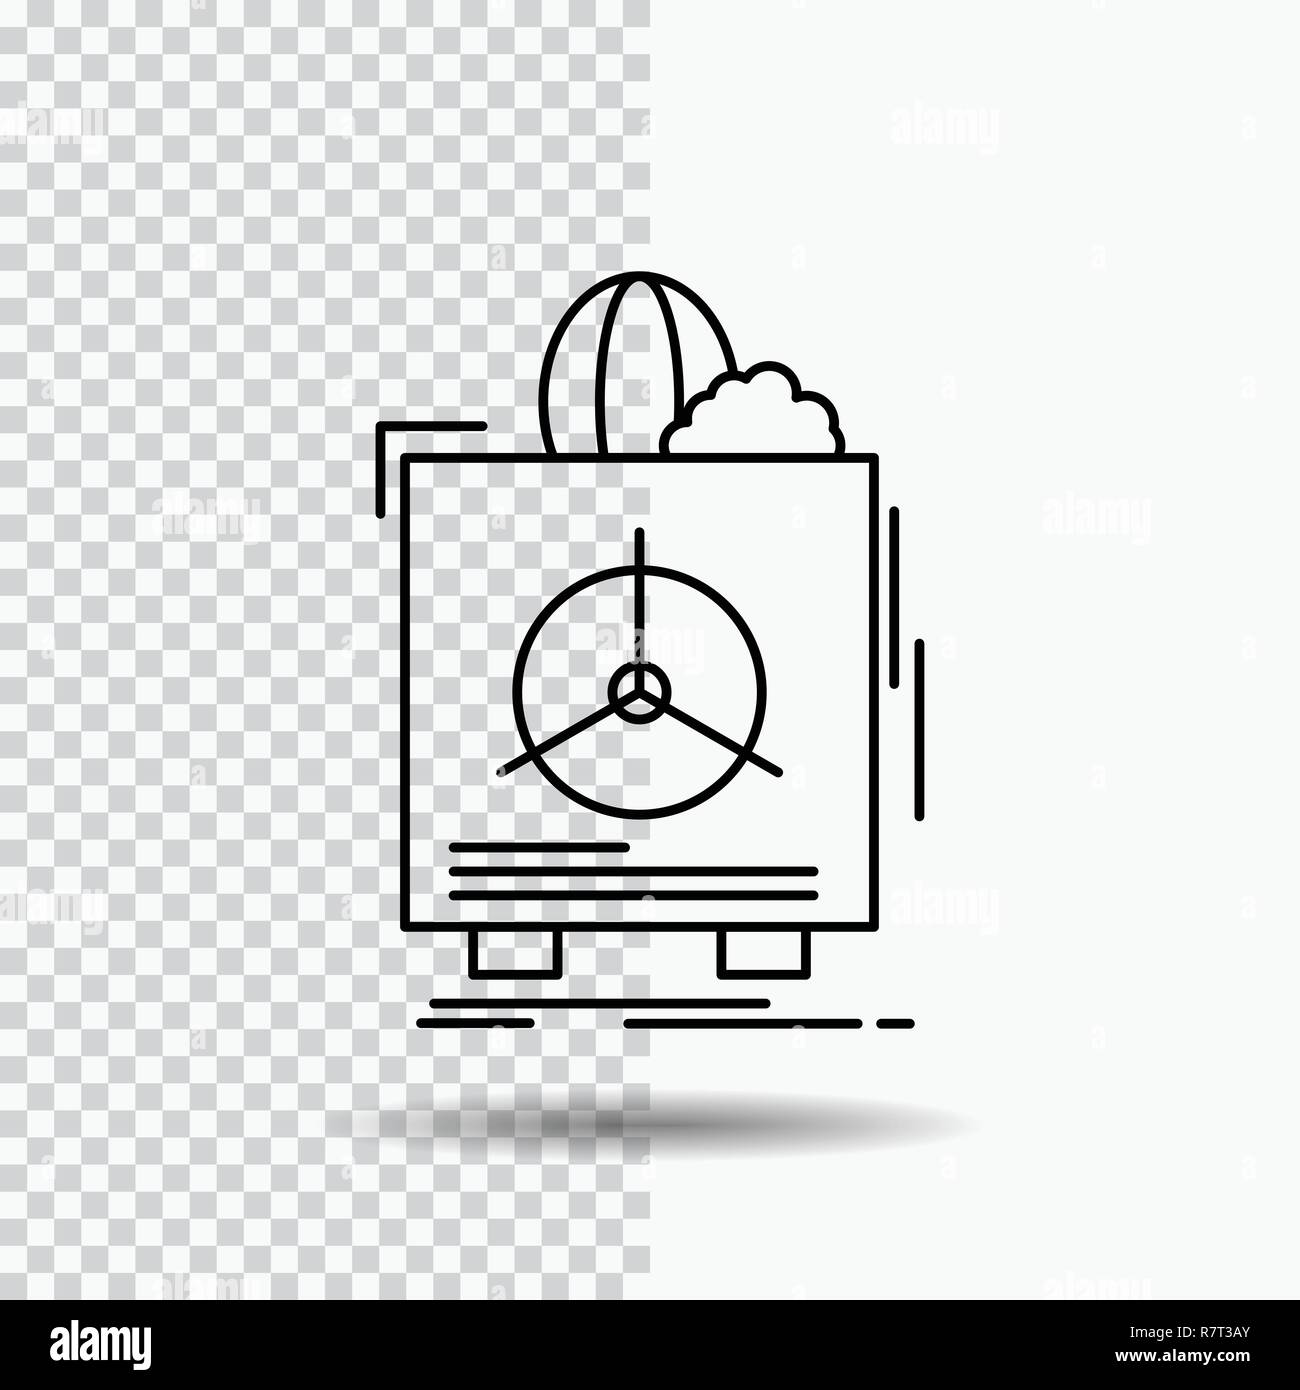 insurance, Fragile, product, warranty, health Line Icon on Transparent Background. Black Icon Vector Illustration - Stock Vector